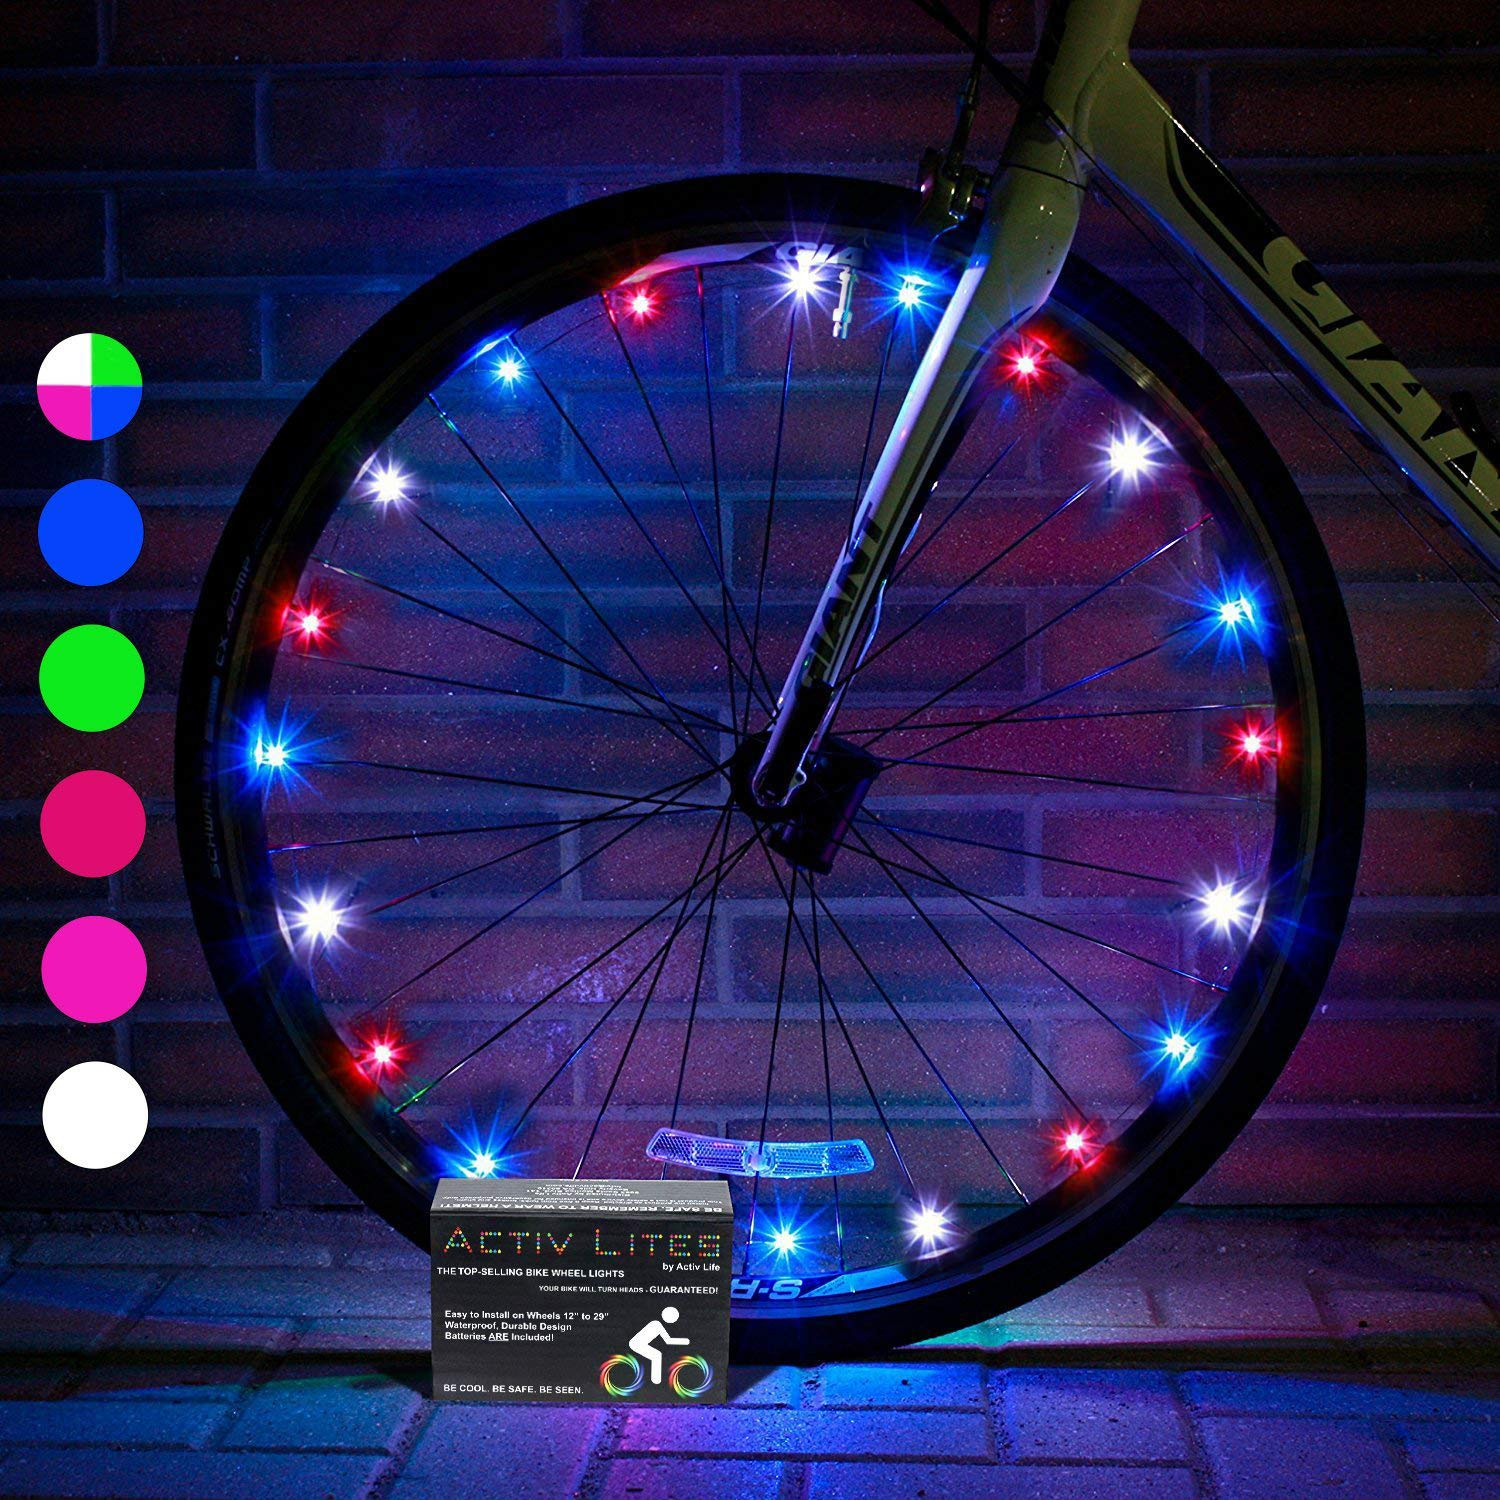 Activ Life Bike Lights (1 Wheel, Red, White & Blue) Best Fitness Gifts for Grand Son Grand Daughter Niece Nephew Sports Presents - Top Xmas 2018 Cool and Fun Ideas for Women & Men Who Have Everything